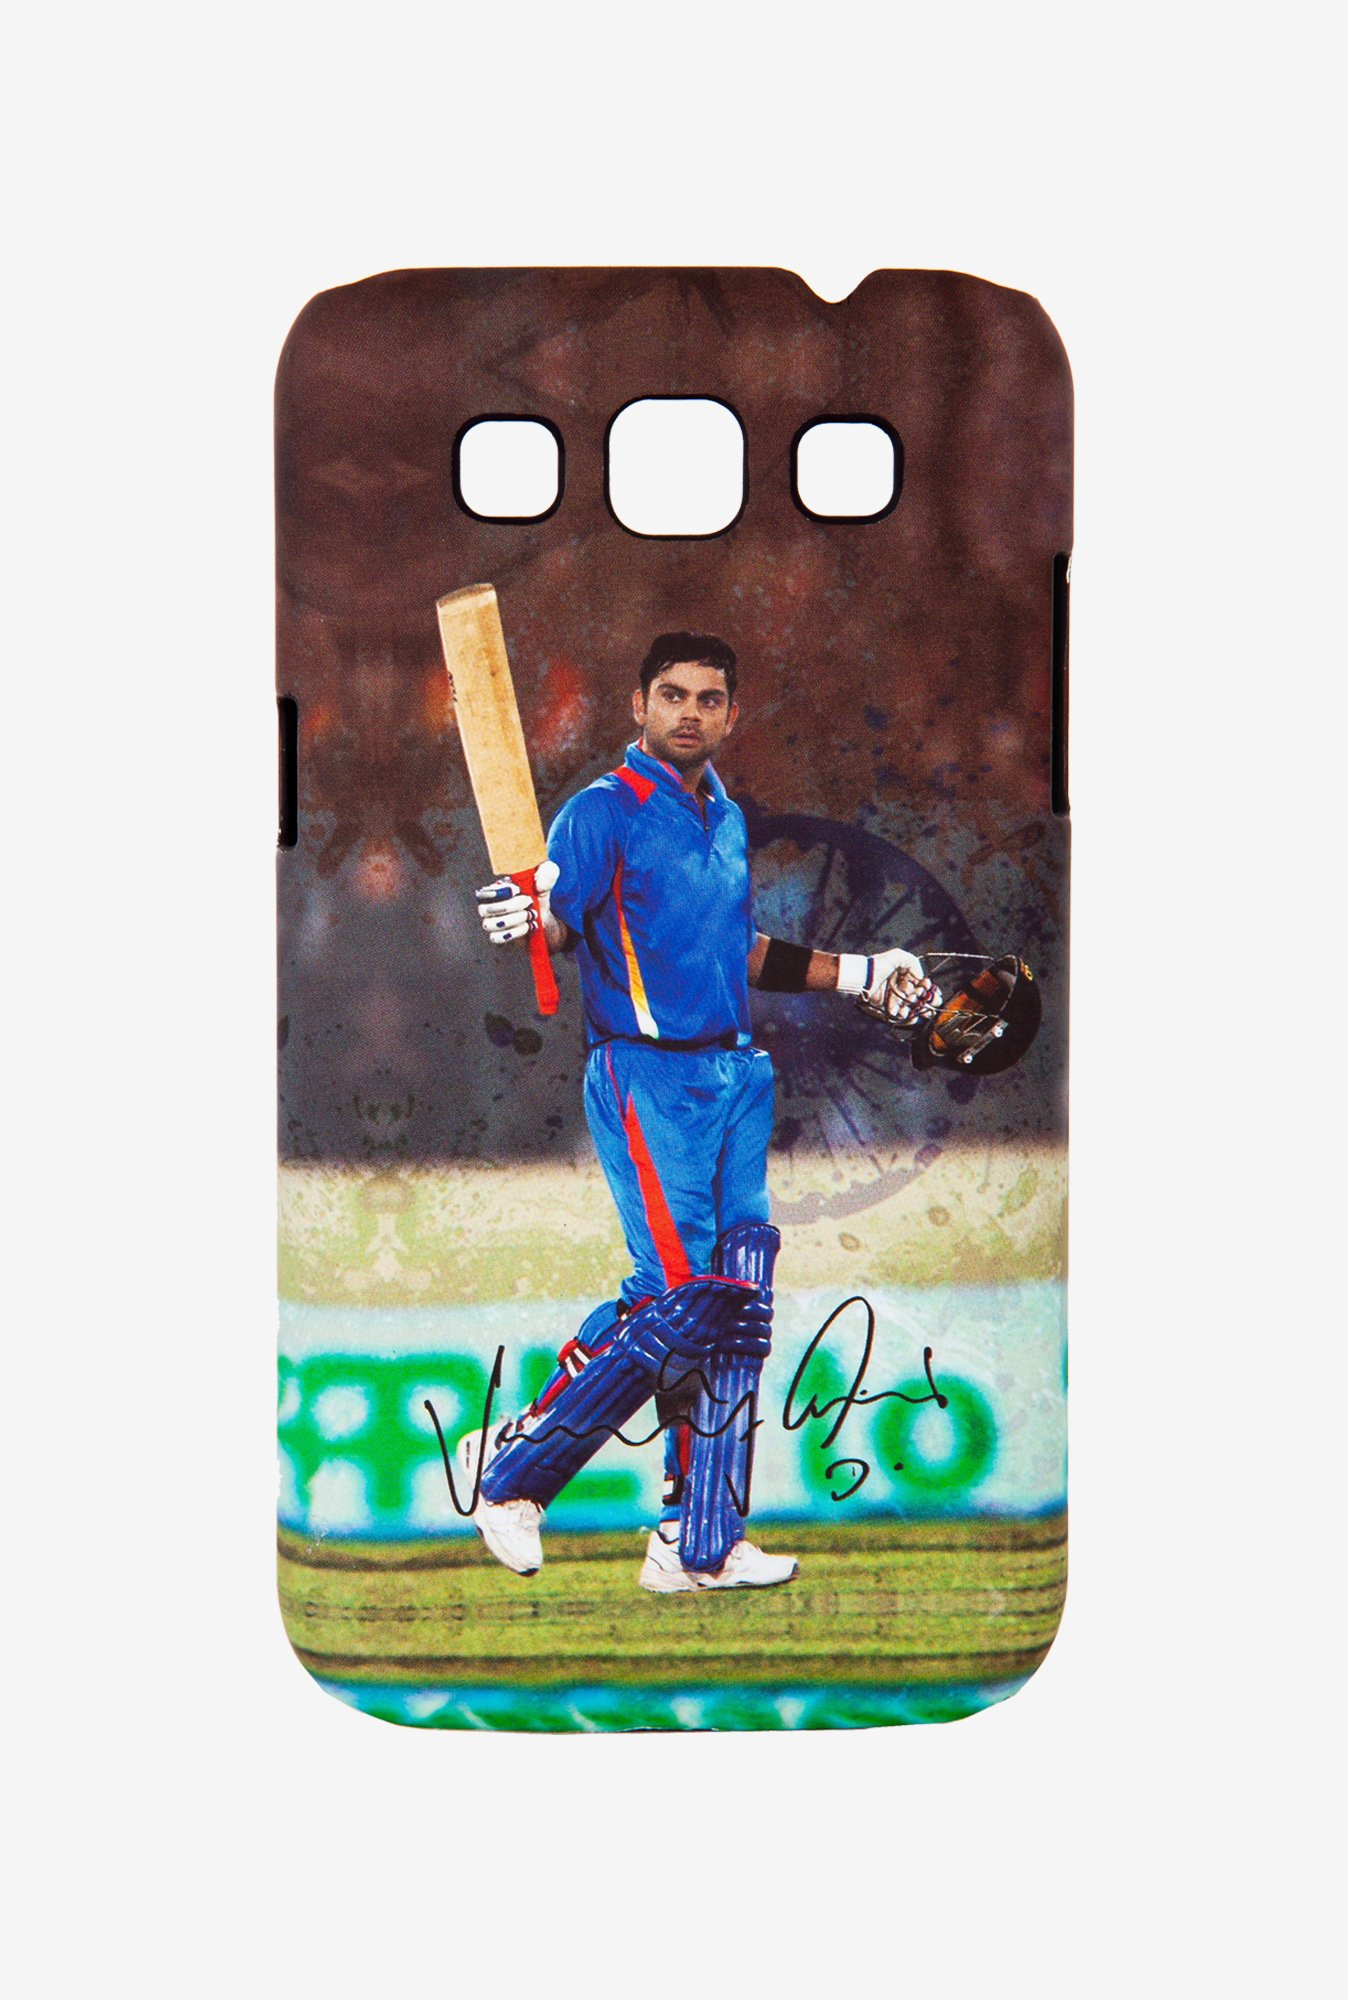 iAccy Virat Kohli Signature Case for Galaxy Quattro